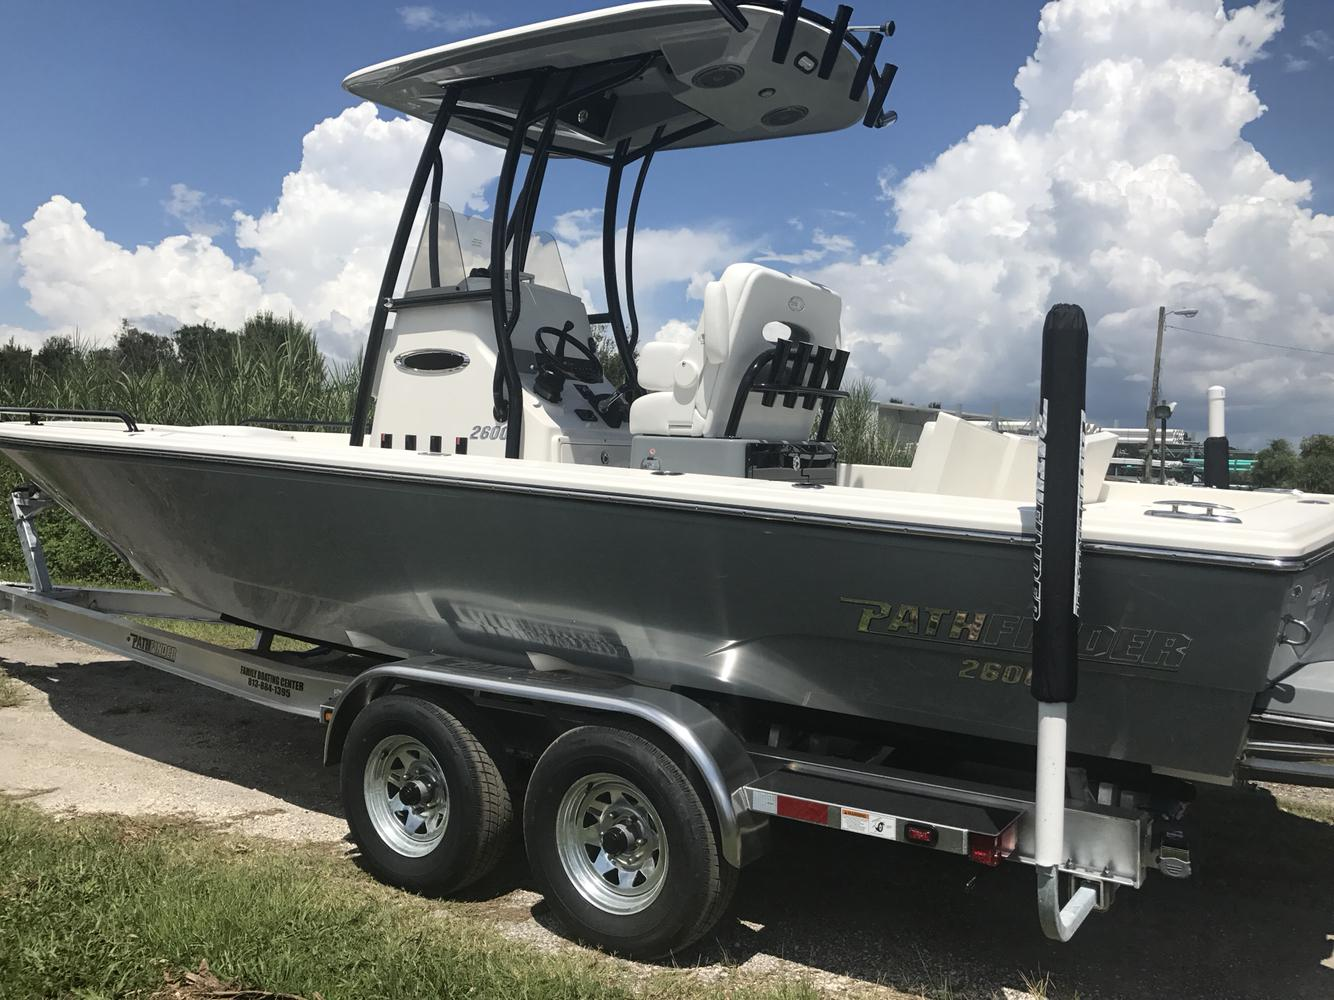 Pathfinder Boats For Sale >> 2019 Pathfinder 2600 Trs For Sale In Tampa Fl Family